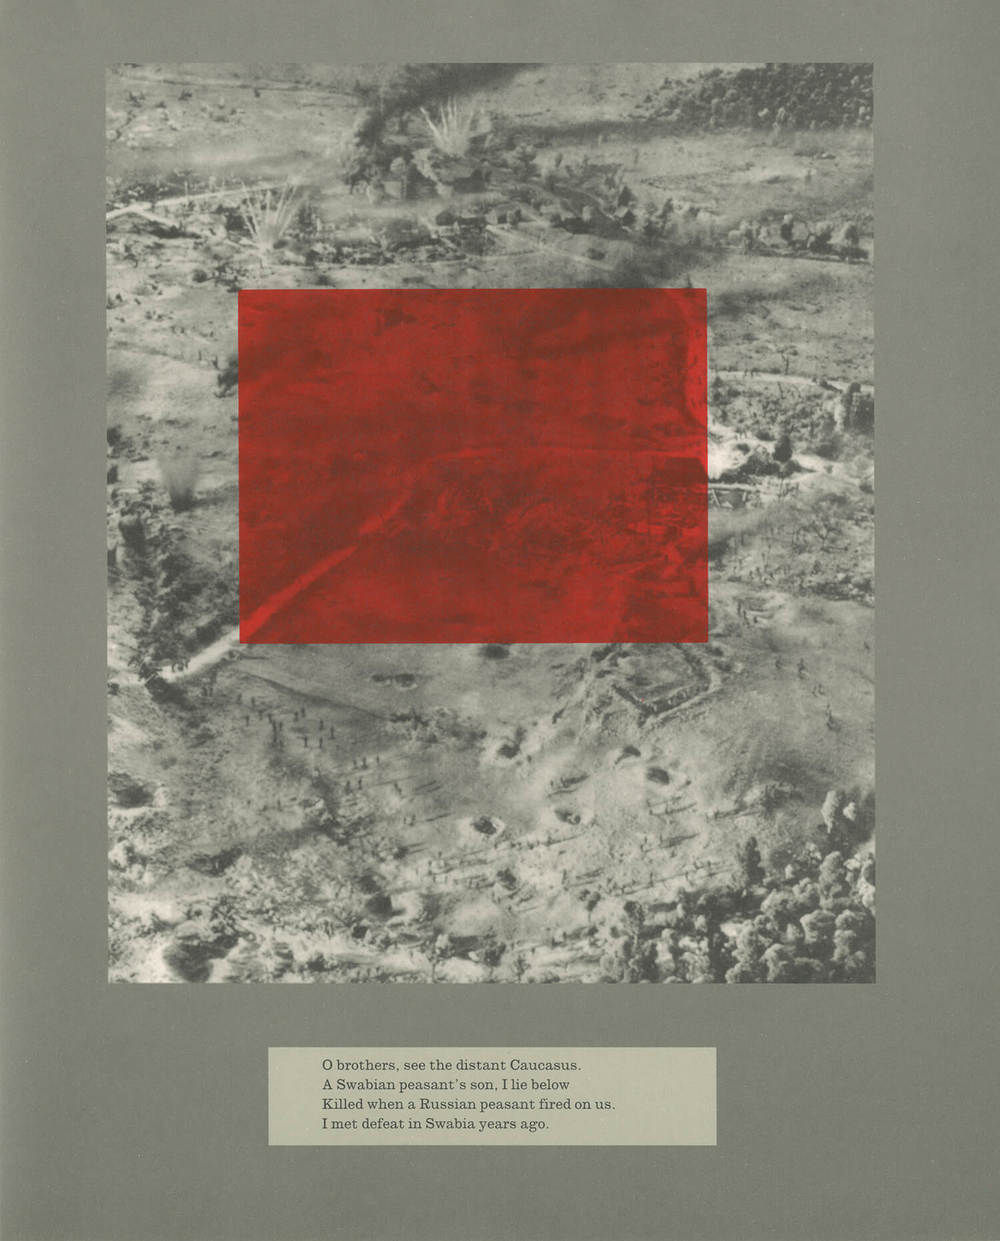 Plate 37, Poor Monuments, The burning of Um Ziefa in Darfur, Sudan. December 12, 2004 (photo Brian Steidle)  http://jspivey.wikispaces.com/Compare+and+ contrast+the+Holocaust+and+the+genocide+i n+Darfur,%3F+SB ,     Work on paper, 24cm x 29cm, 2011